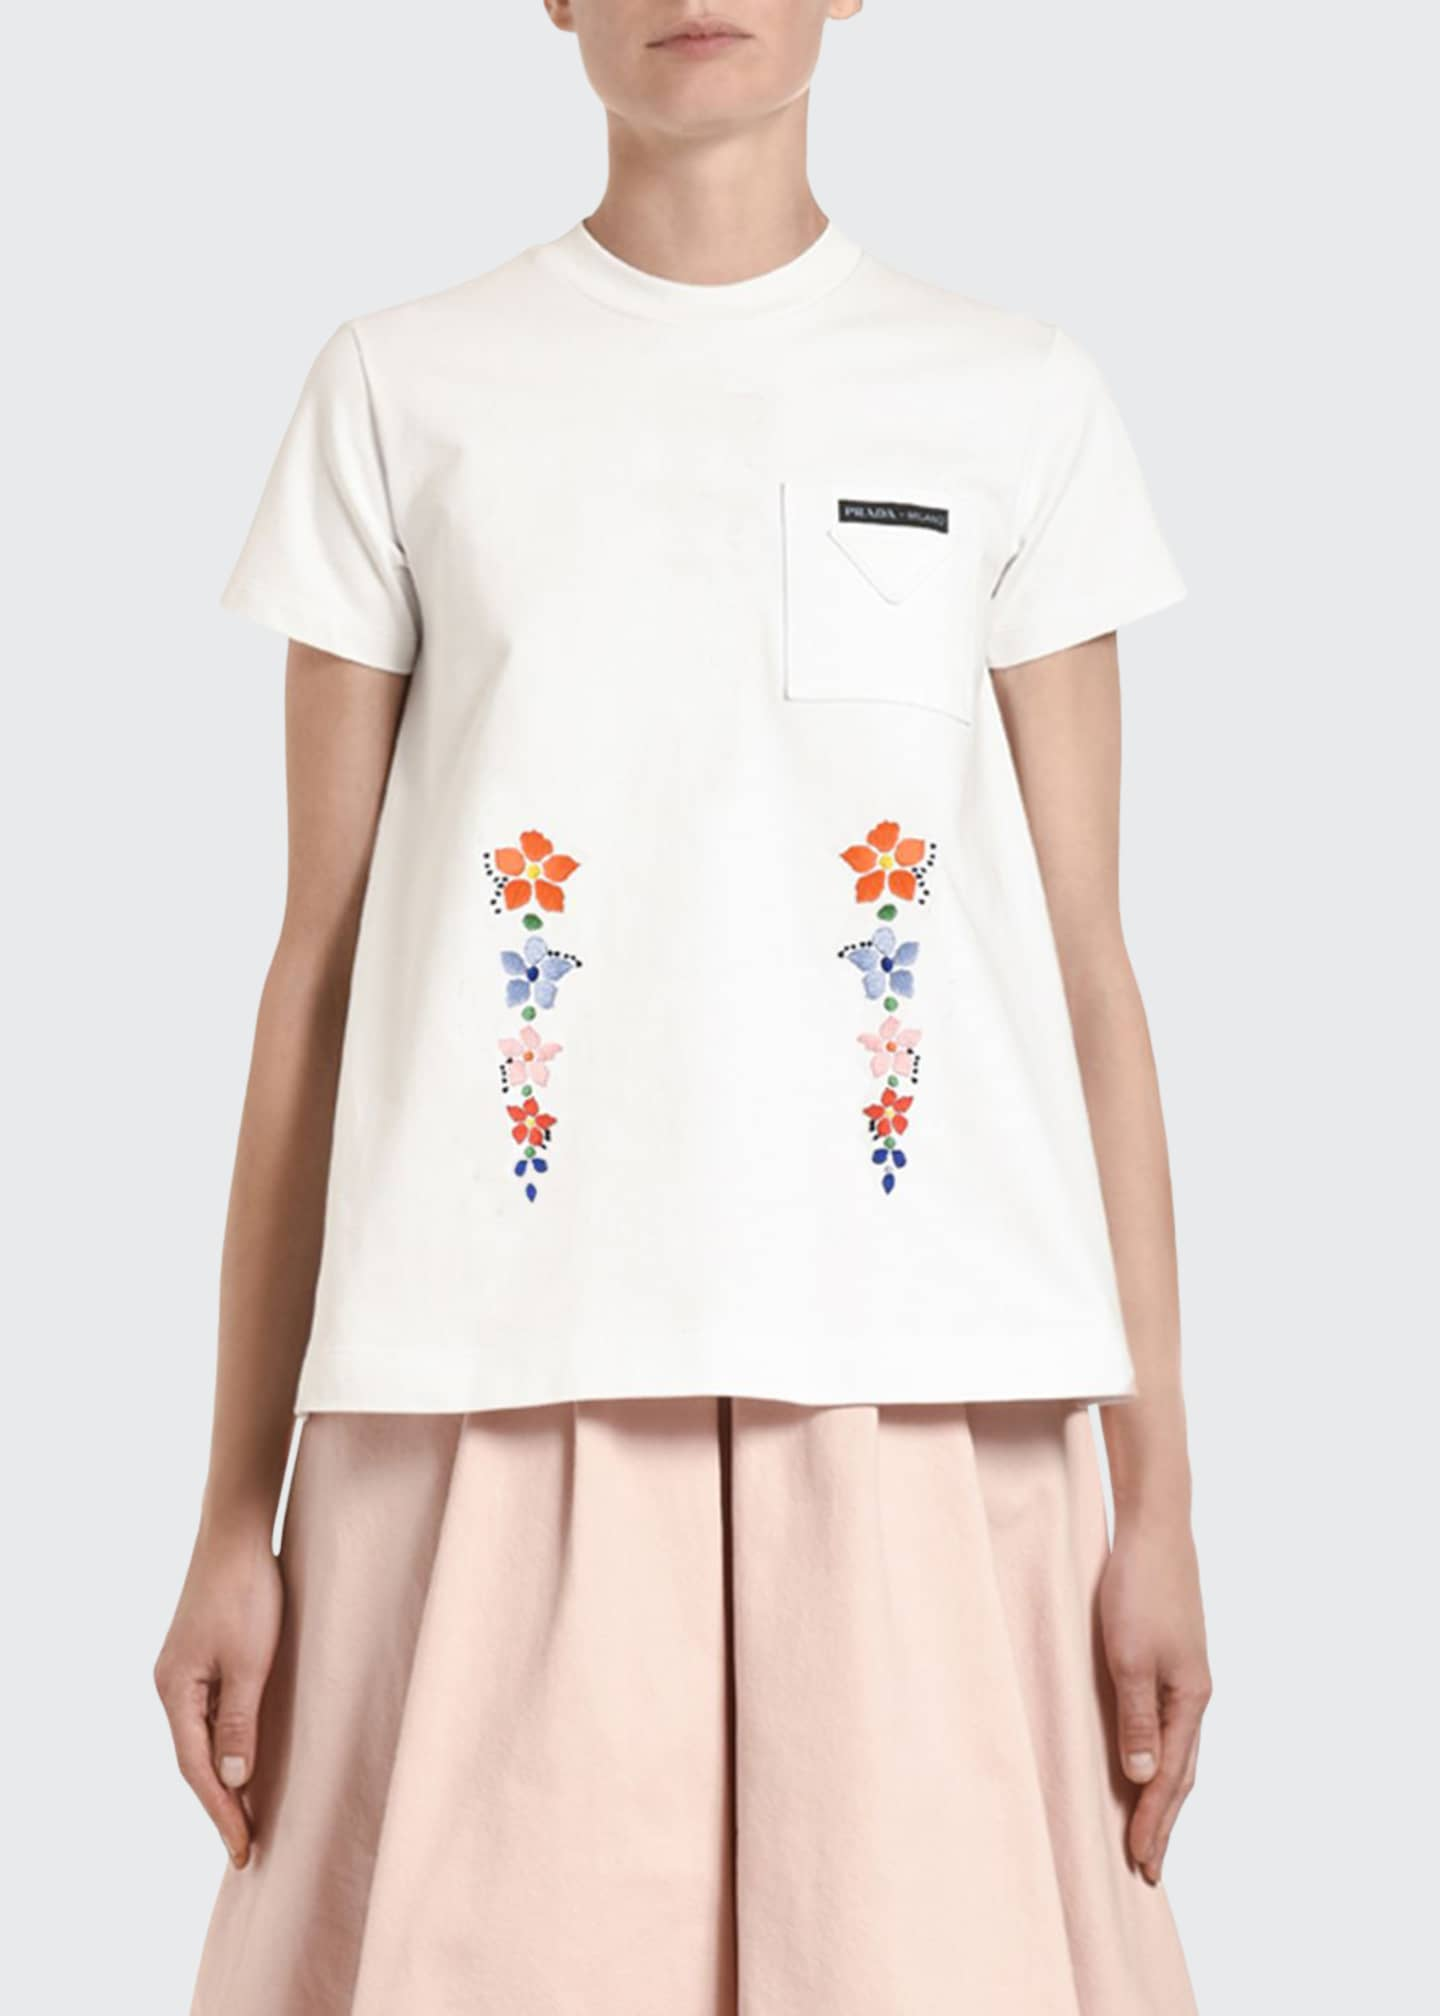 Prada Edelweiss Embroidered T-Shirt